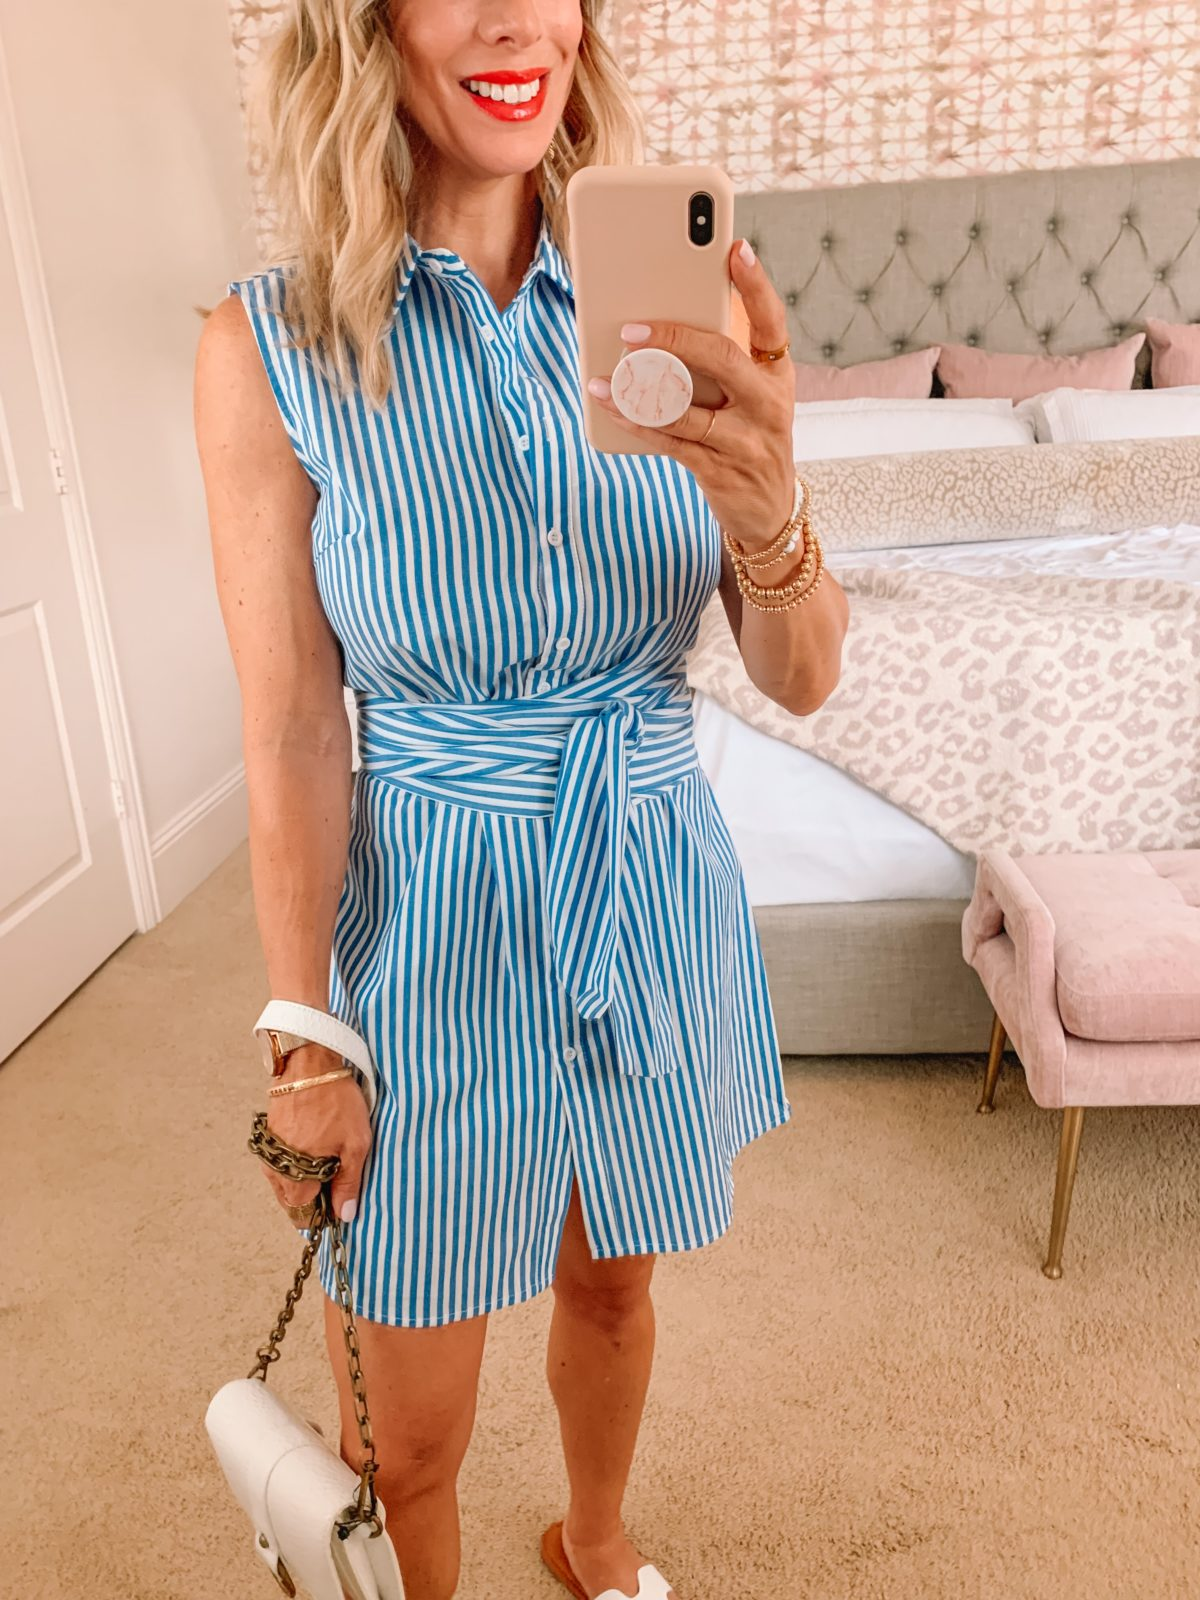 Amazon Fashion Faves, Striped Dress and White Sandals, Crossbody Bag